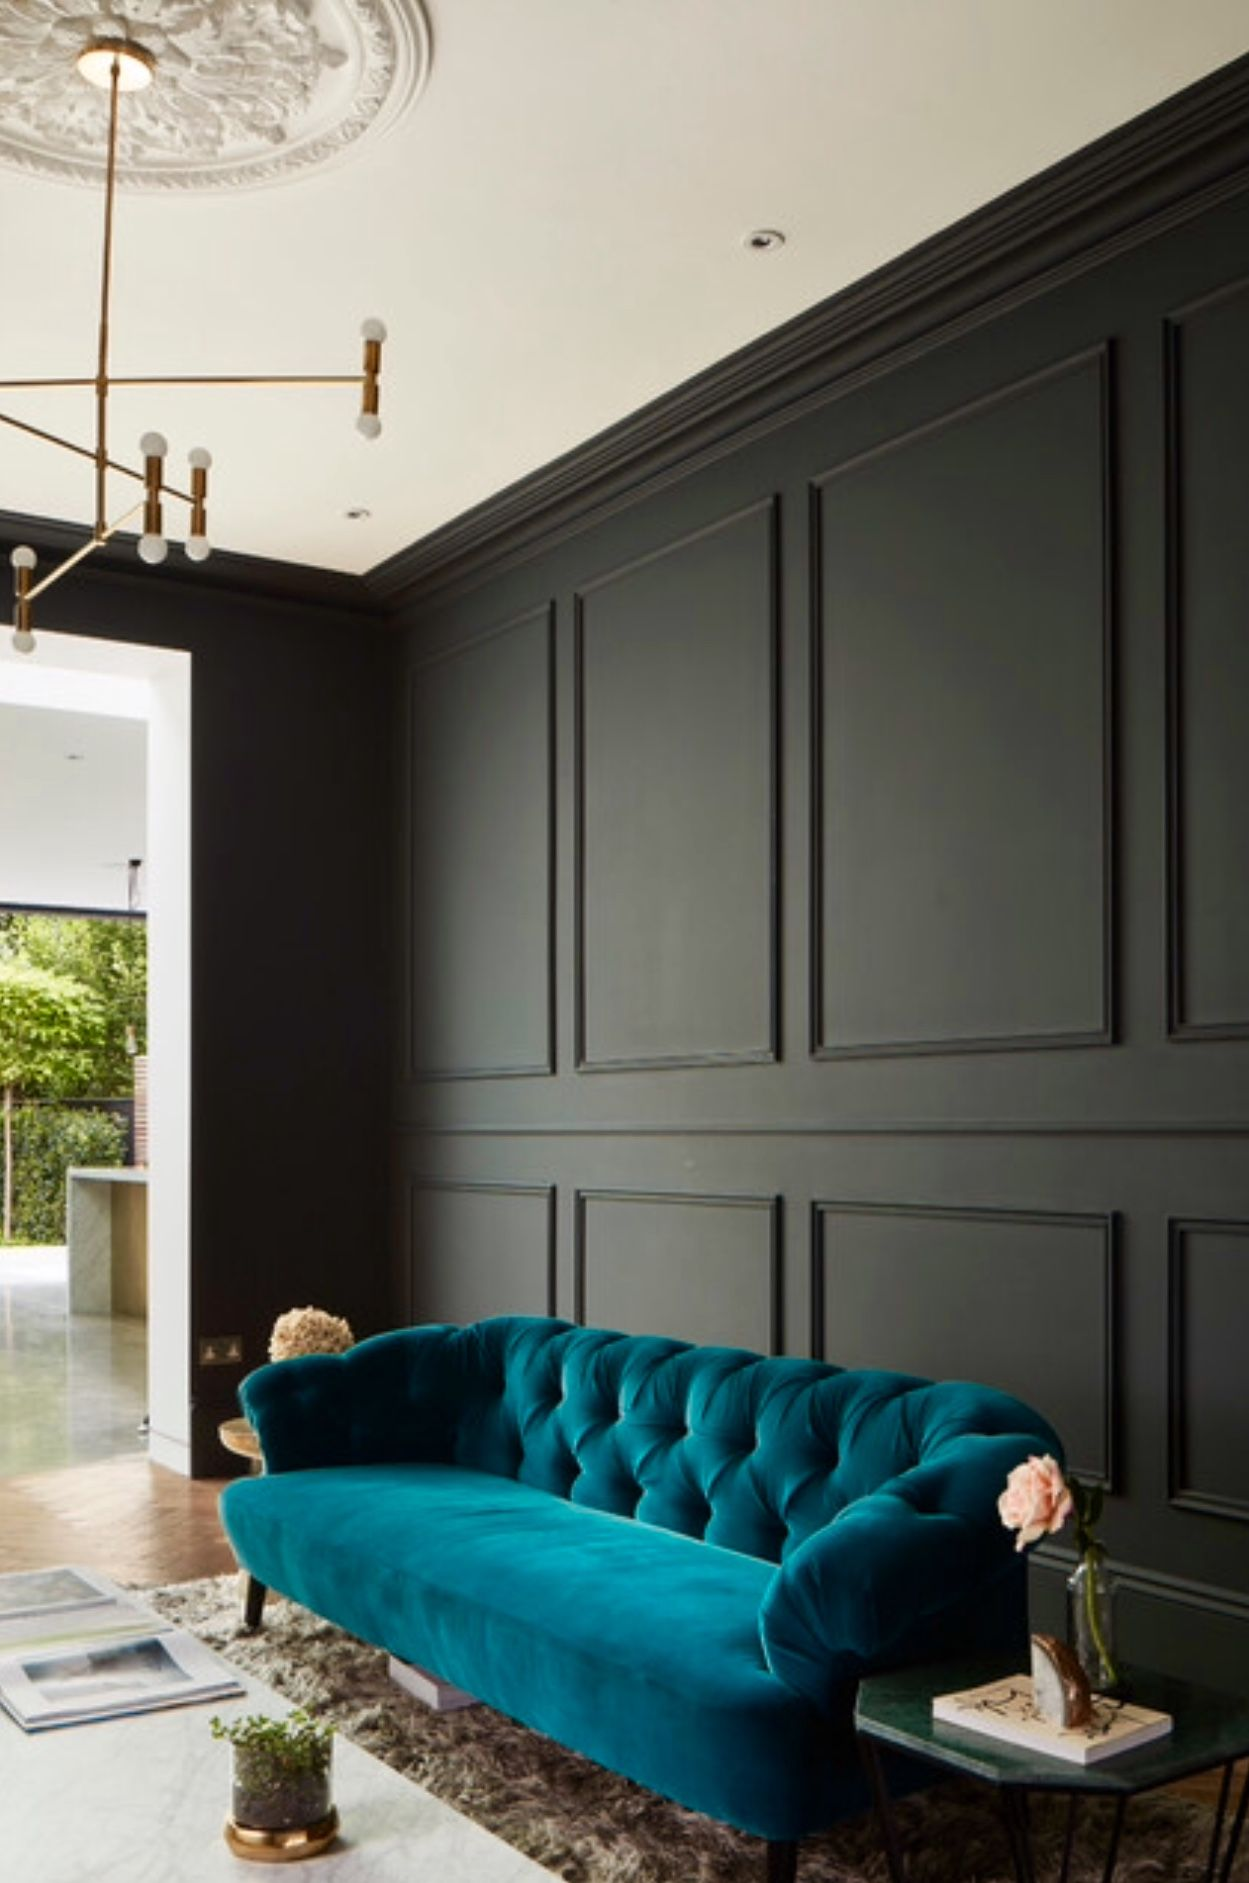 The Dark Value Of The Black Wall Highlights He Vivid Chroma Of The